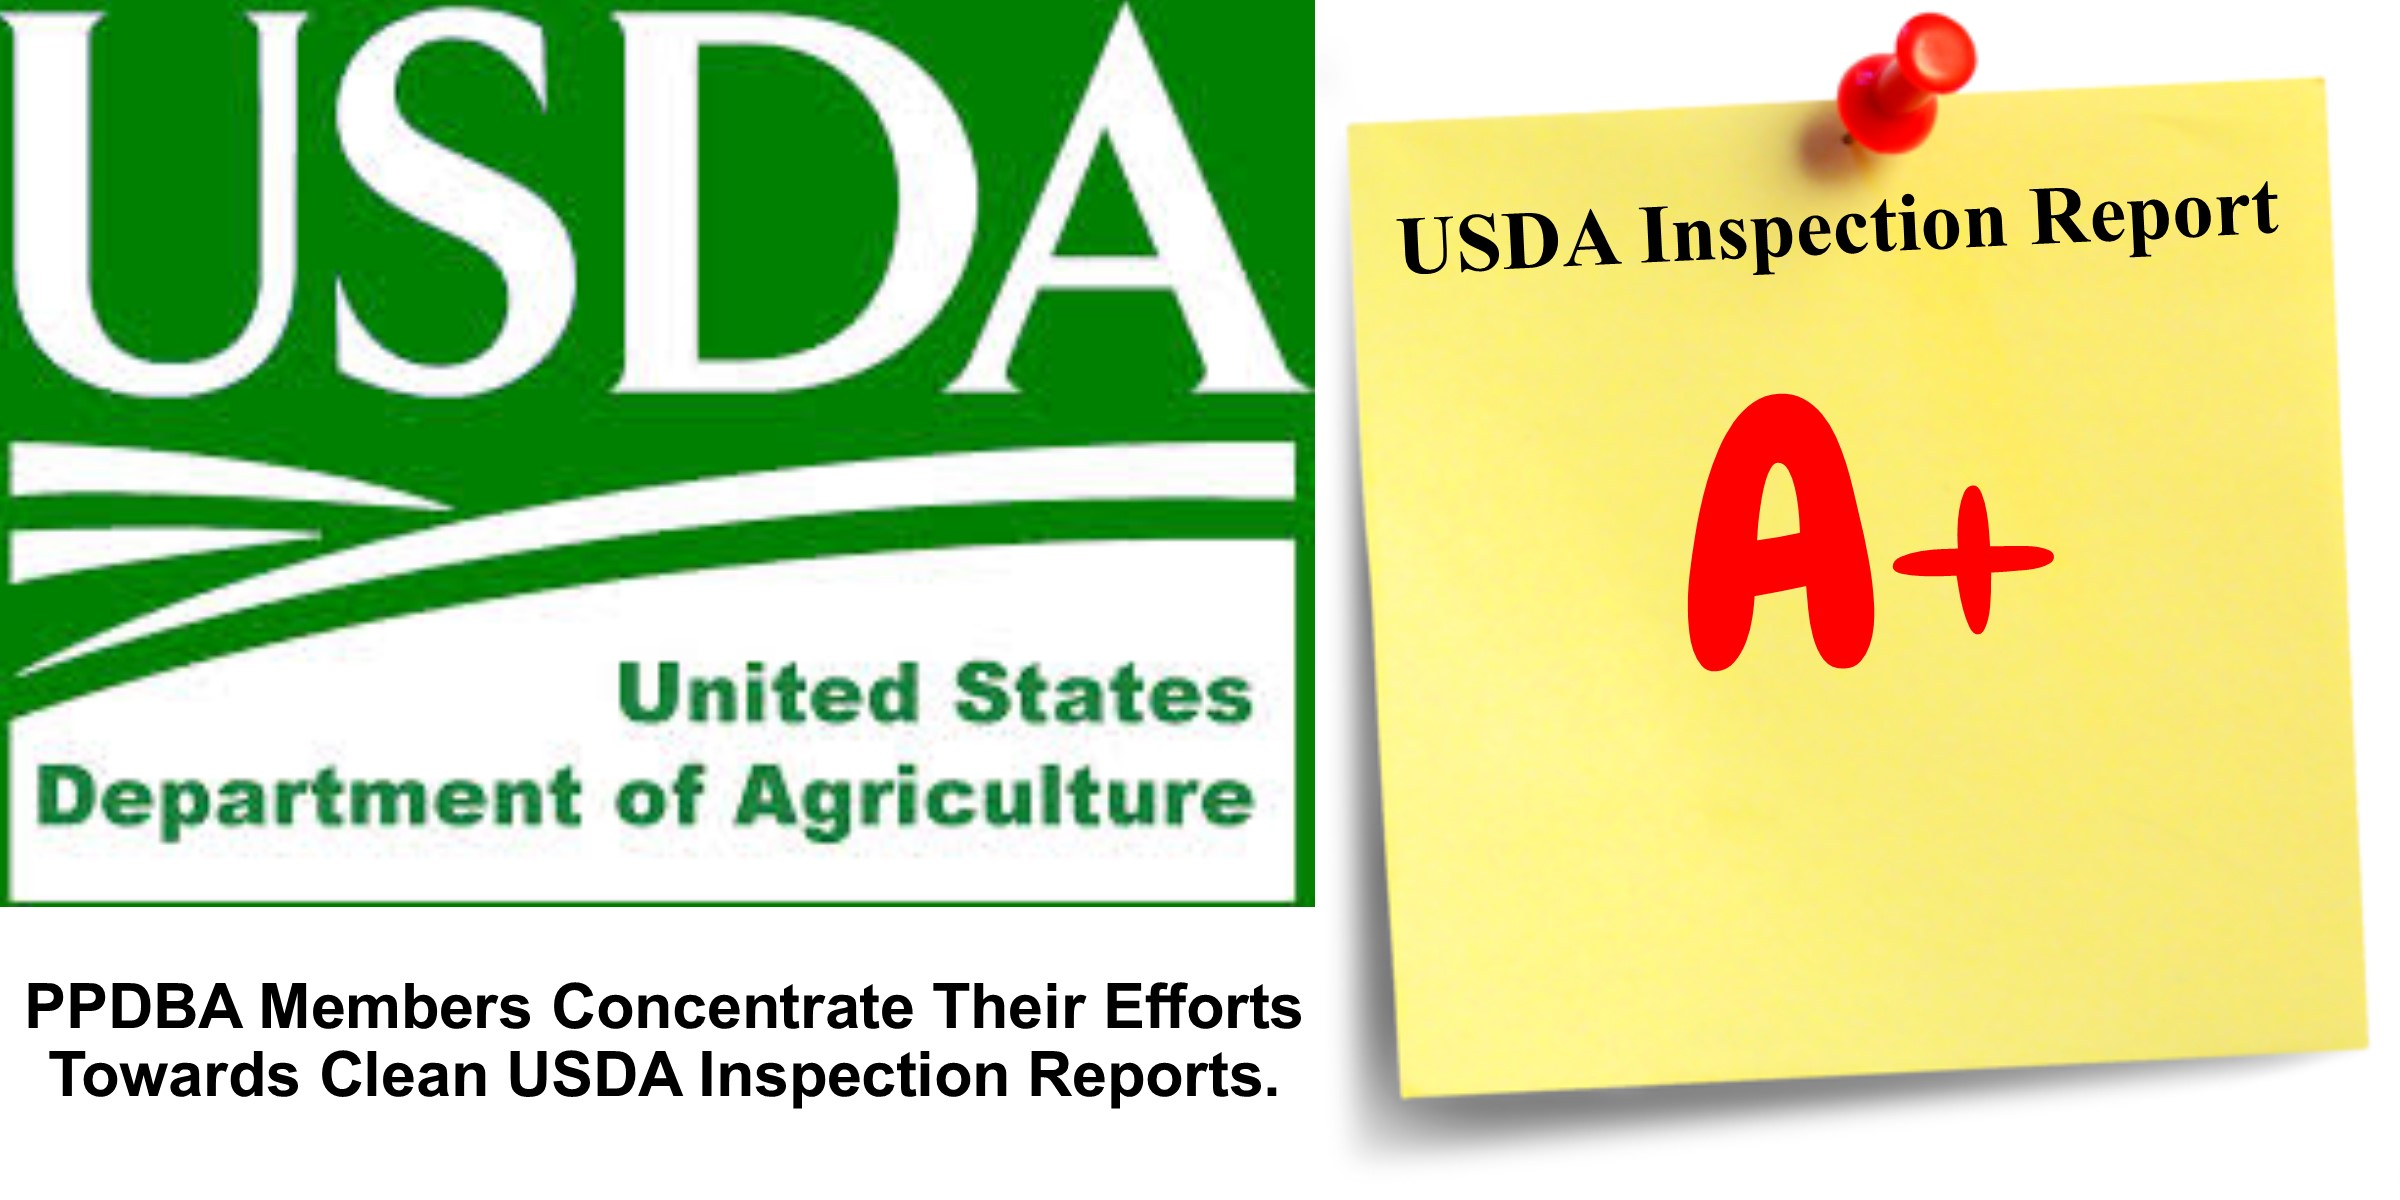 PPDBA Members Strive For Clean USDA Inspection Reports